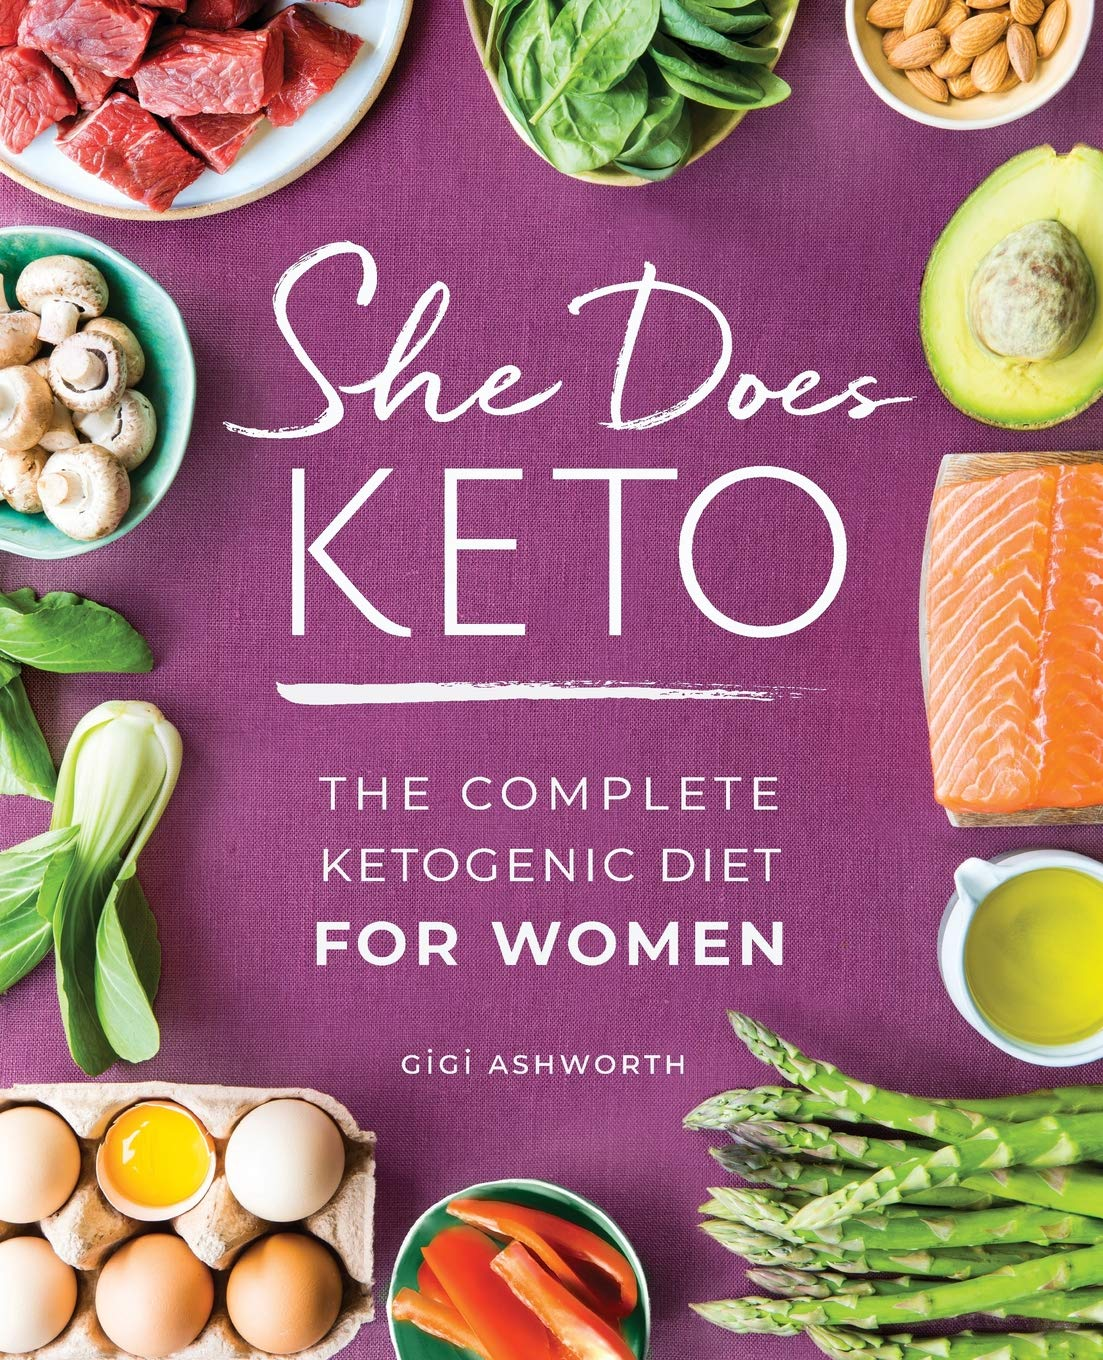 so what is the ketogenic diet?